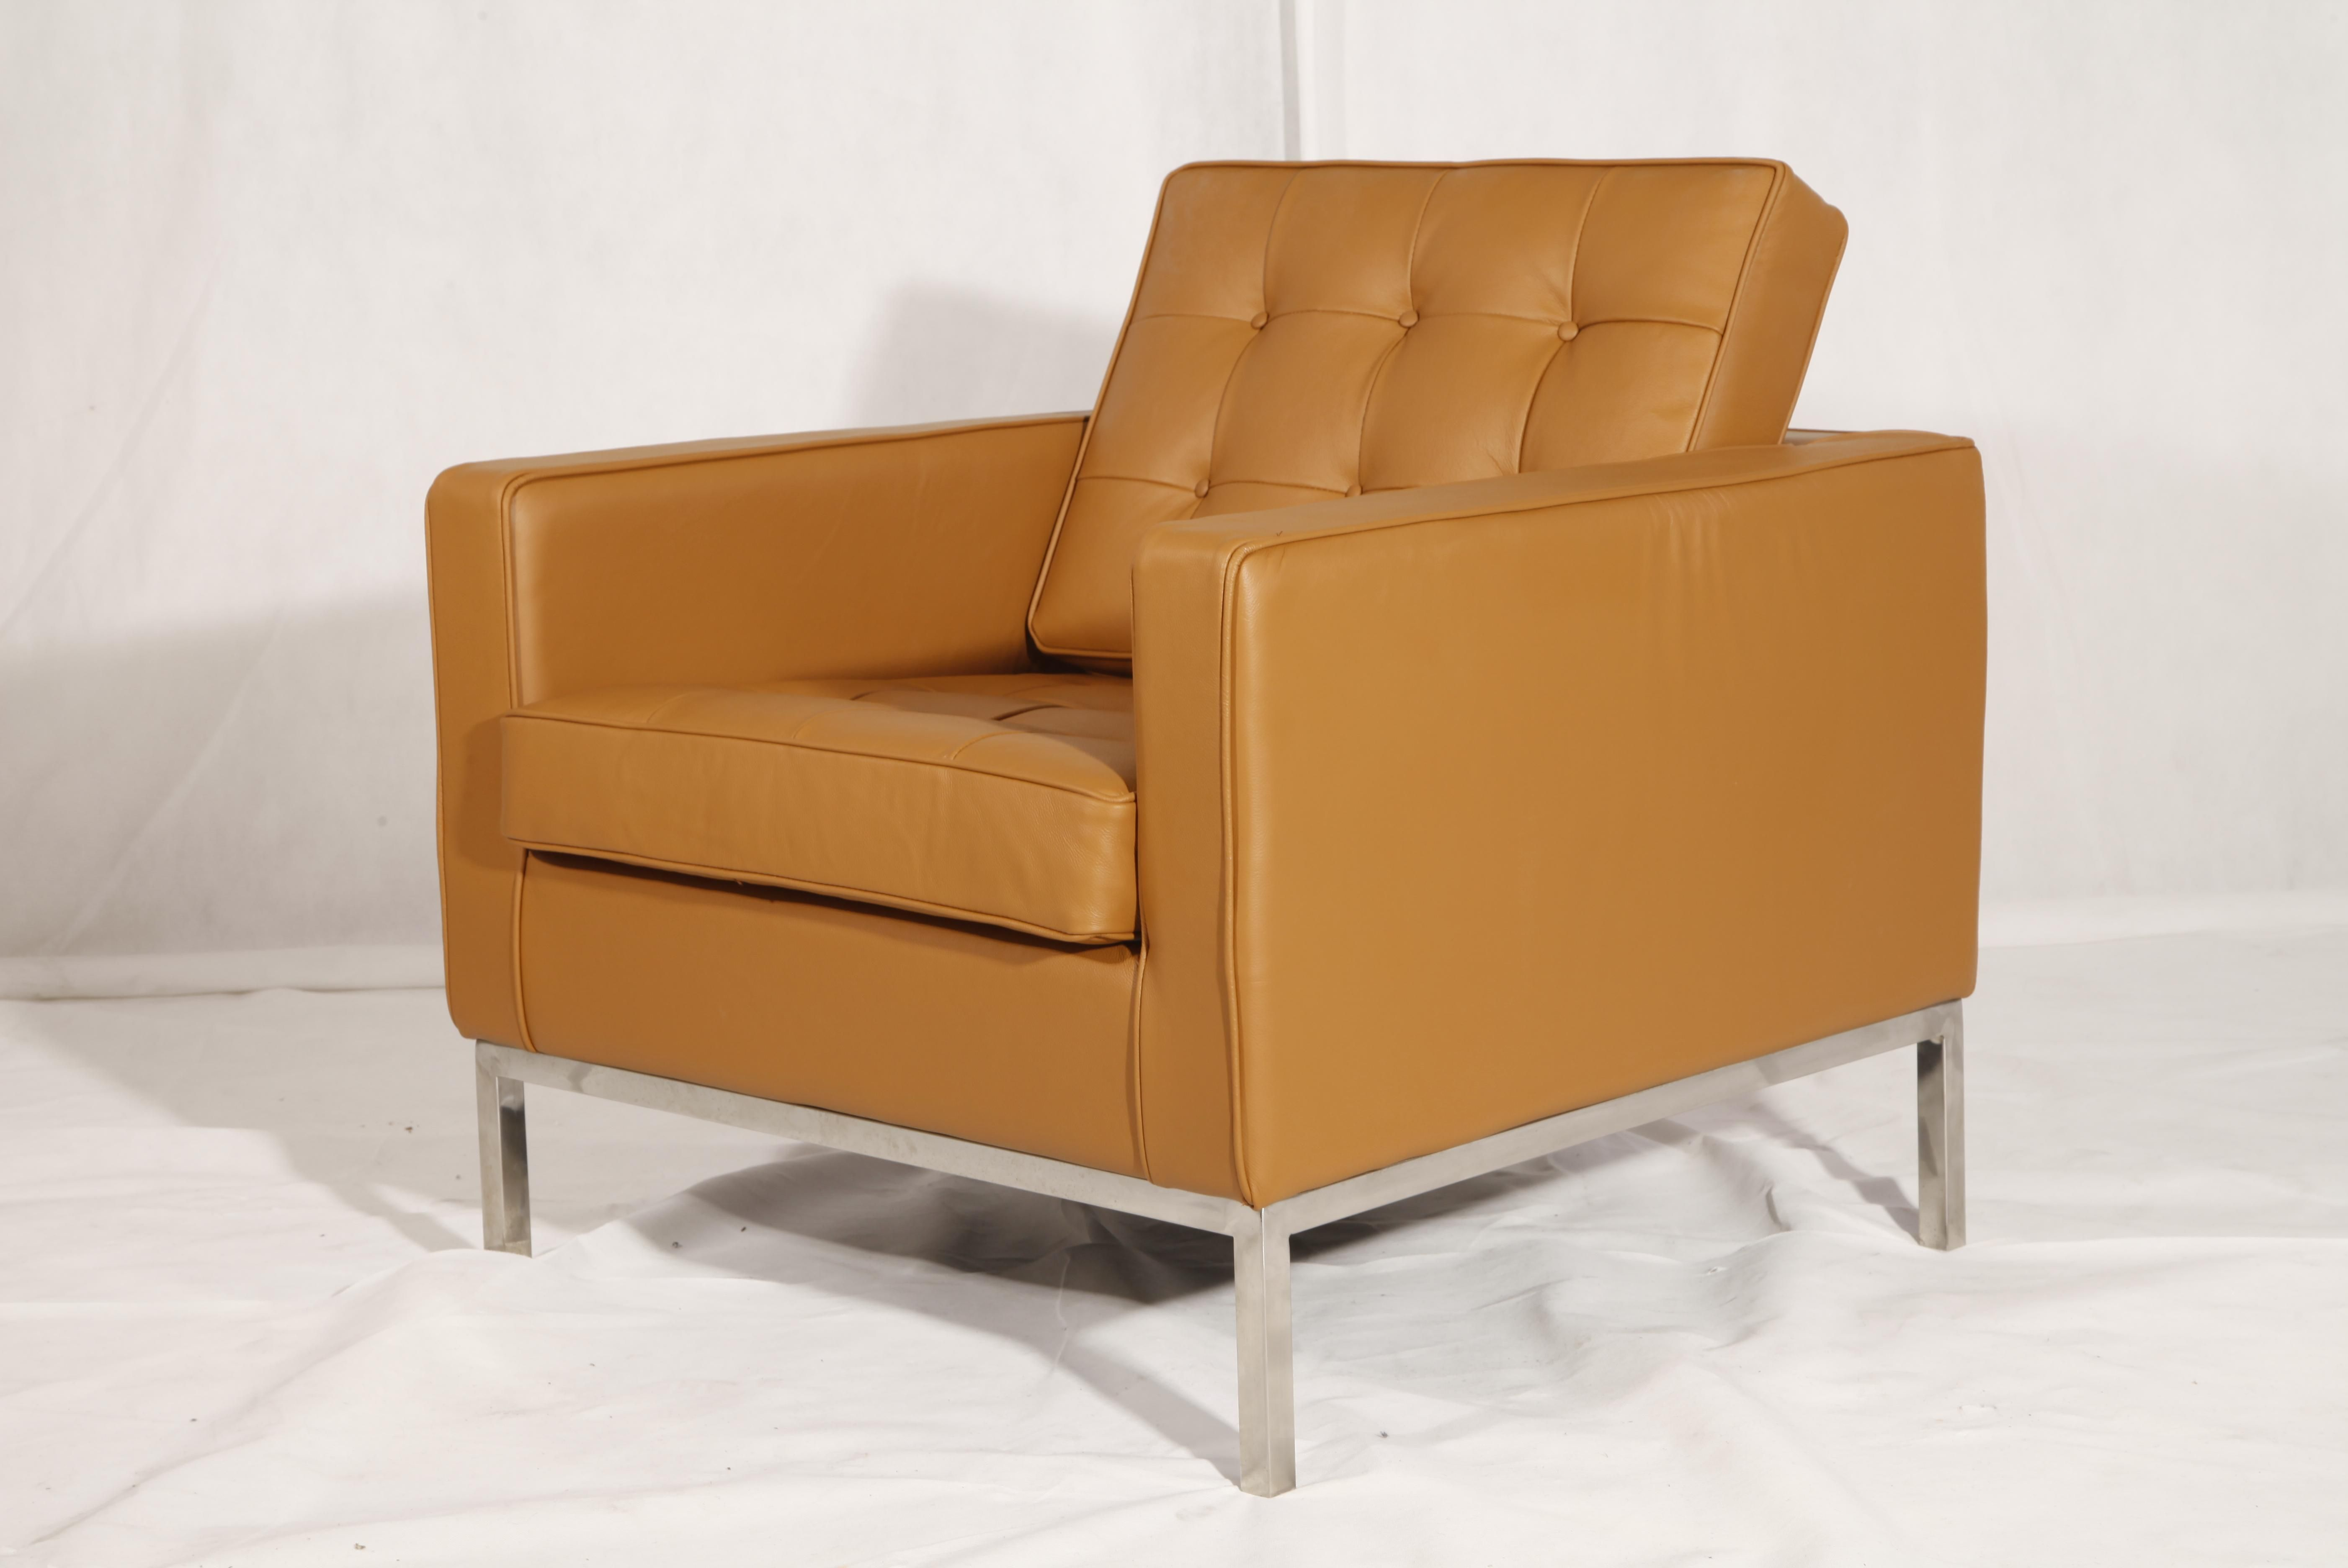 Florence Knoll Chair Tan Leather Reproduction